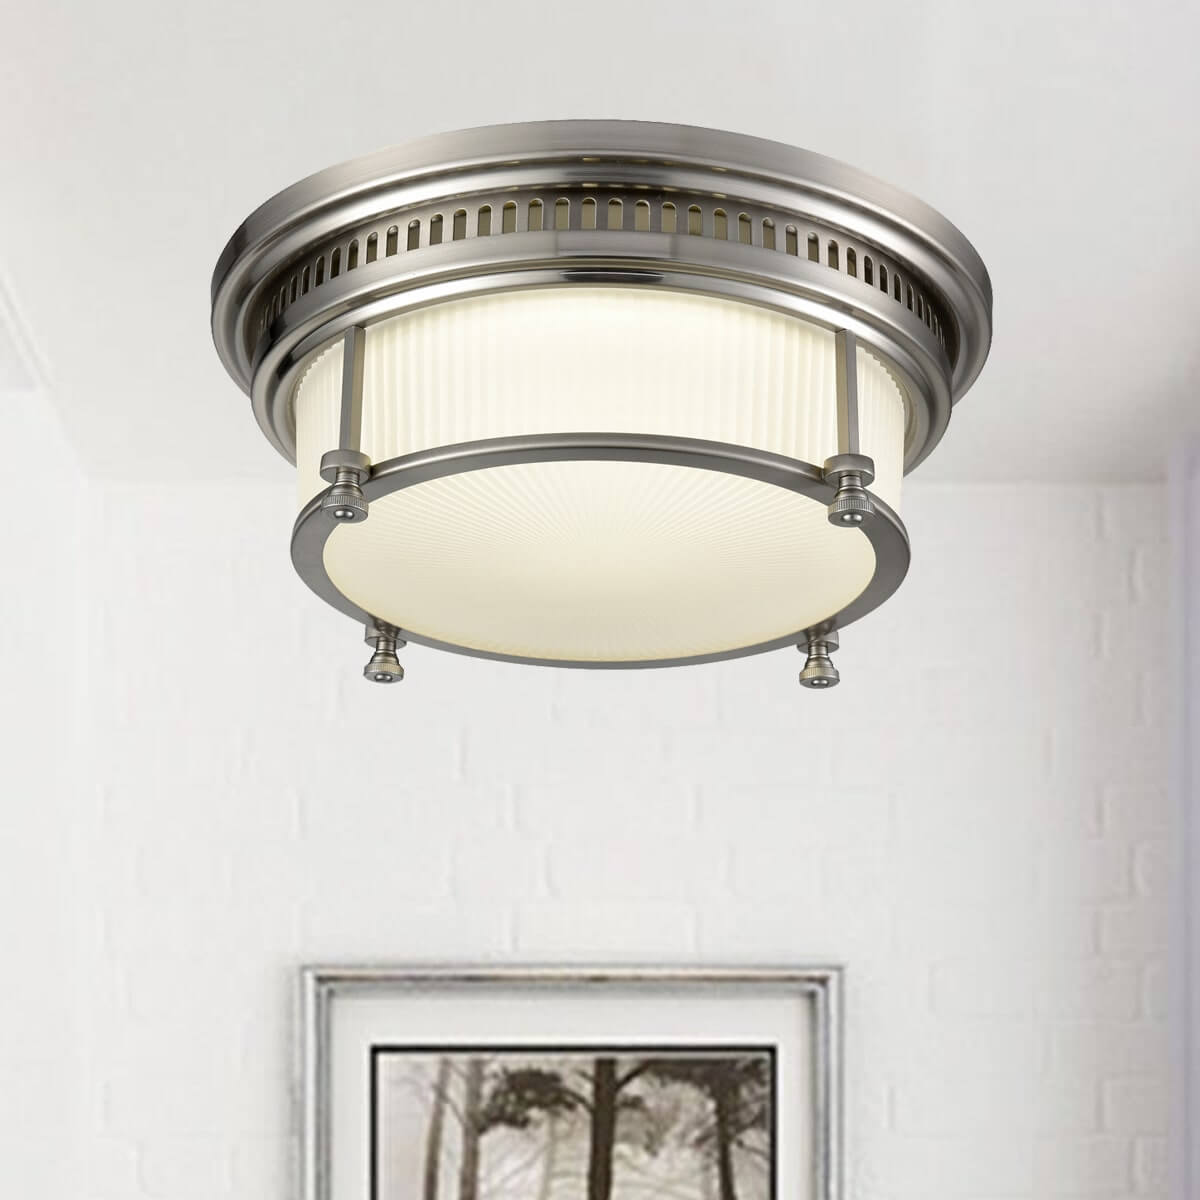 Modern Drum Led Ceiling Light With Frosted Glass Shade Brushed Nickel